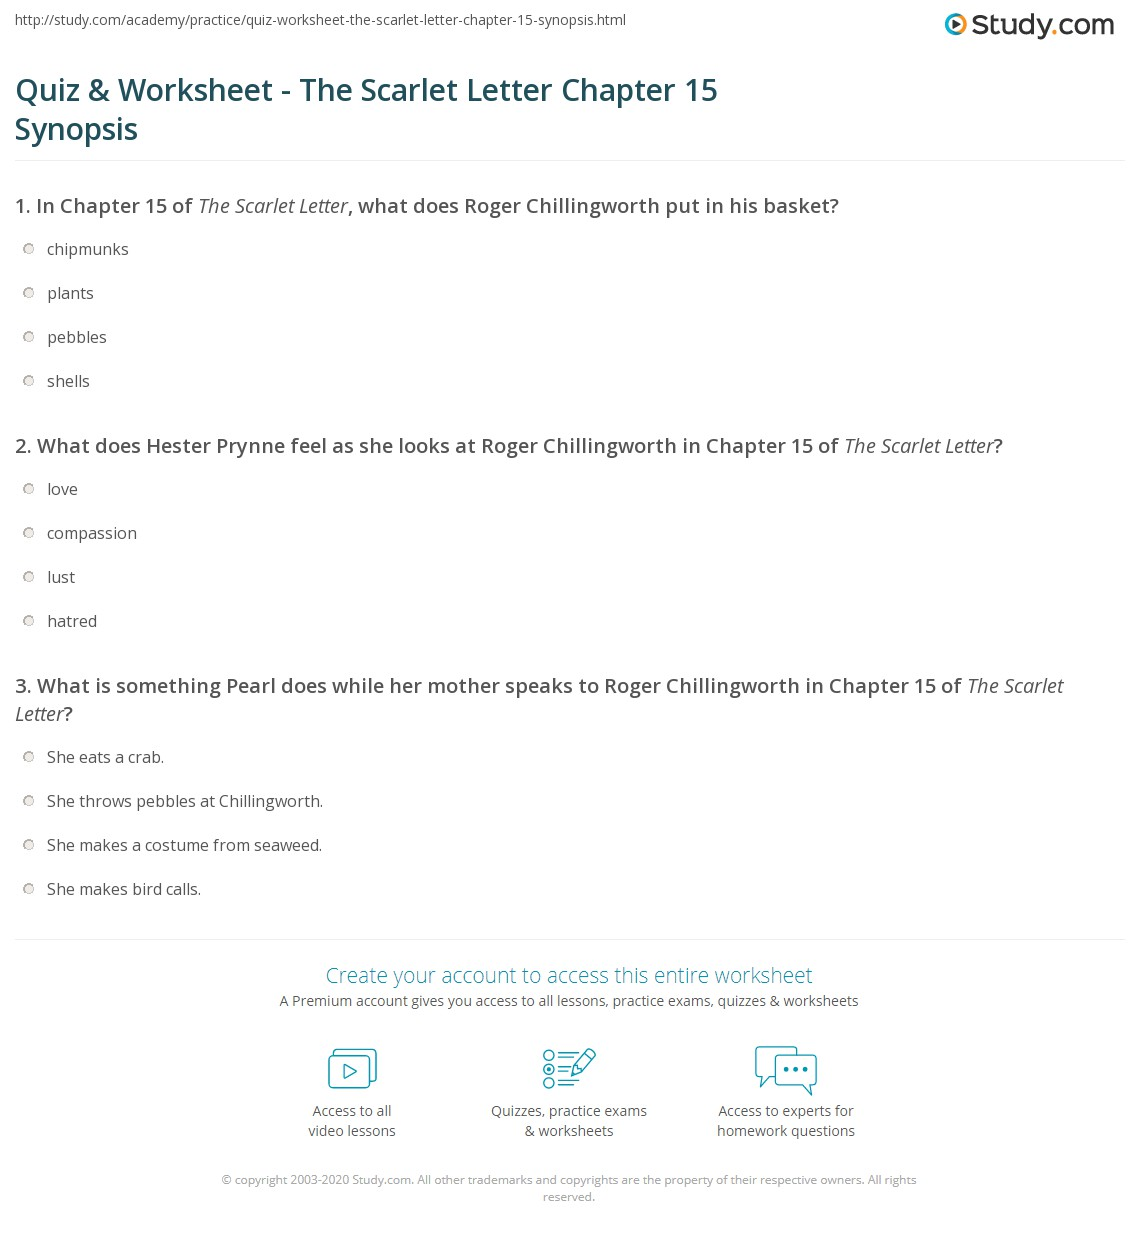 Quiz & Worksheet   The Scarlet Letter Chapter 15 Synopsis | Study.com